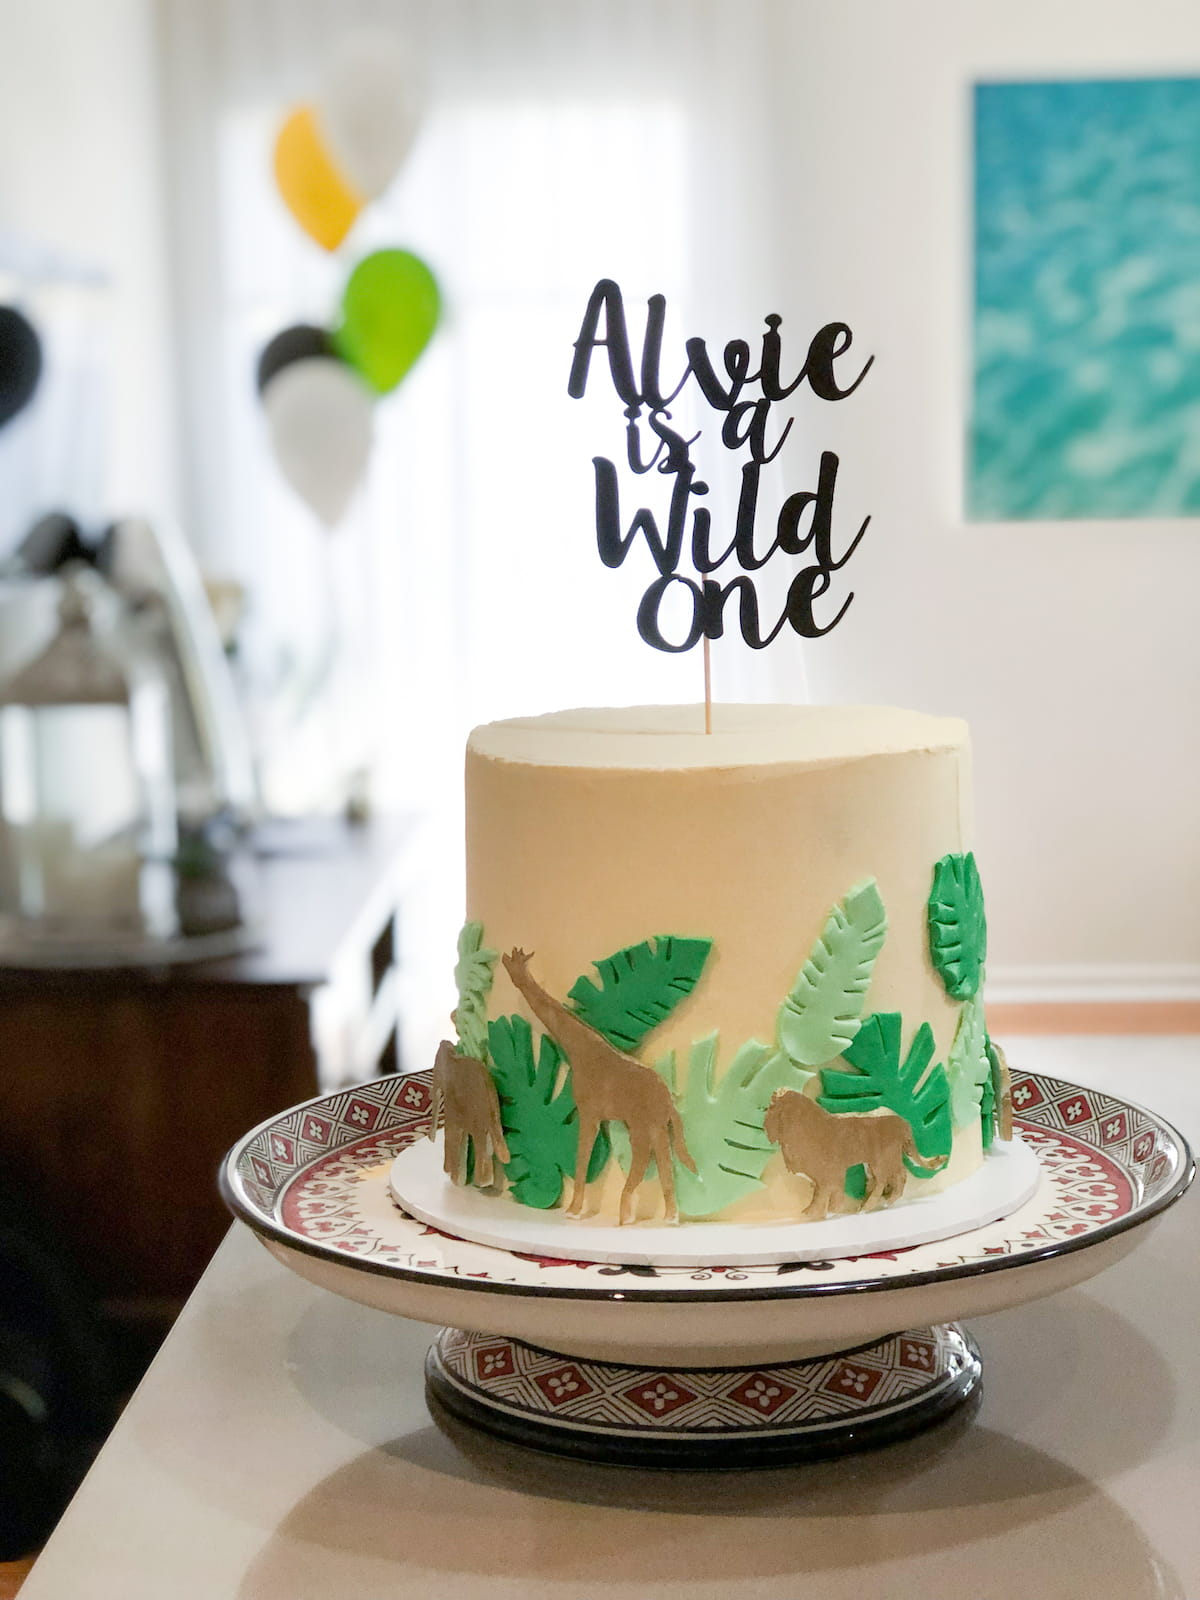 Wild one birthday cake